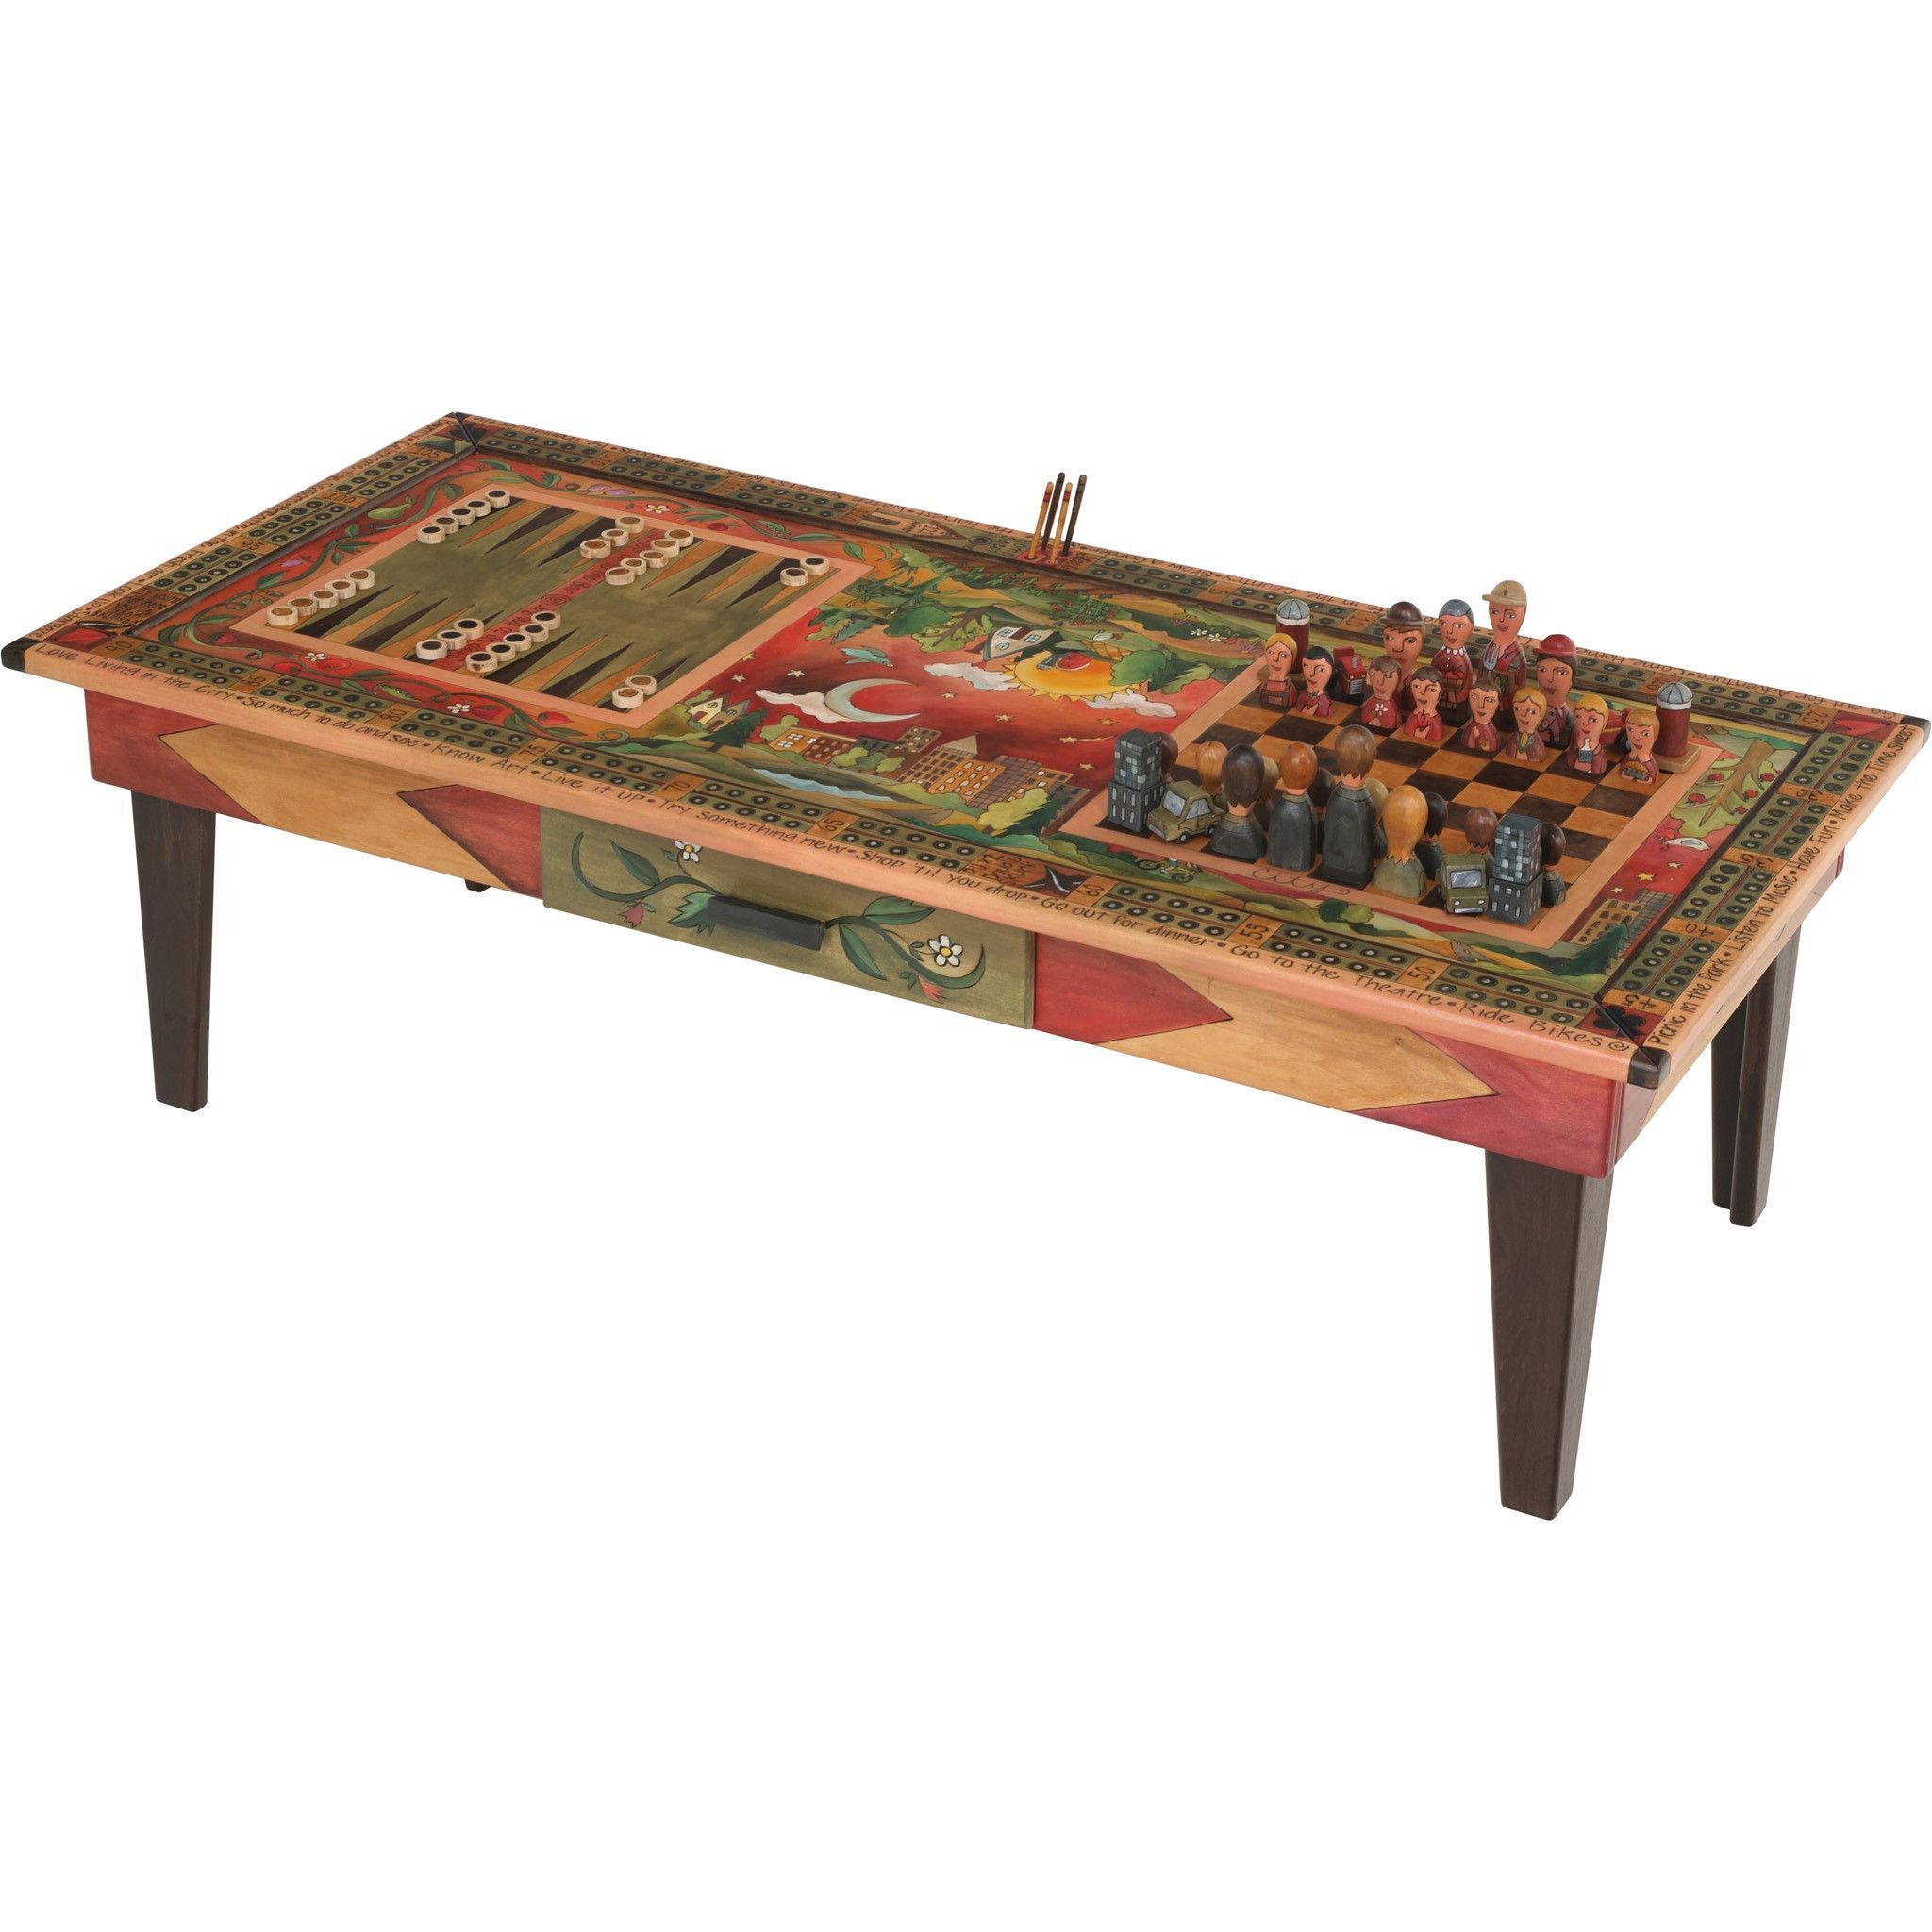 Attirant Sticks Urban Game Table With Milled Legs And Country Vs. City Sculptural  Chess Set GAM003,GPC009 S313589, Artistic Artisan Designer Games